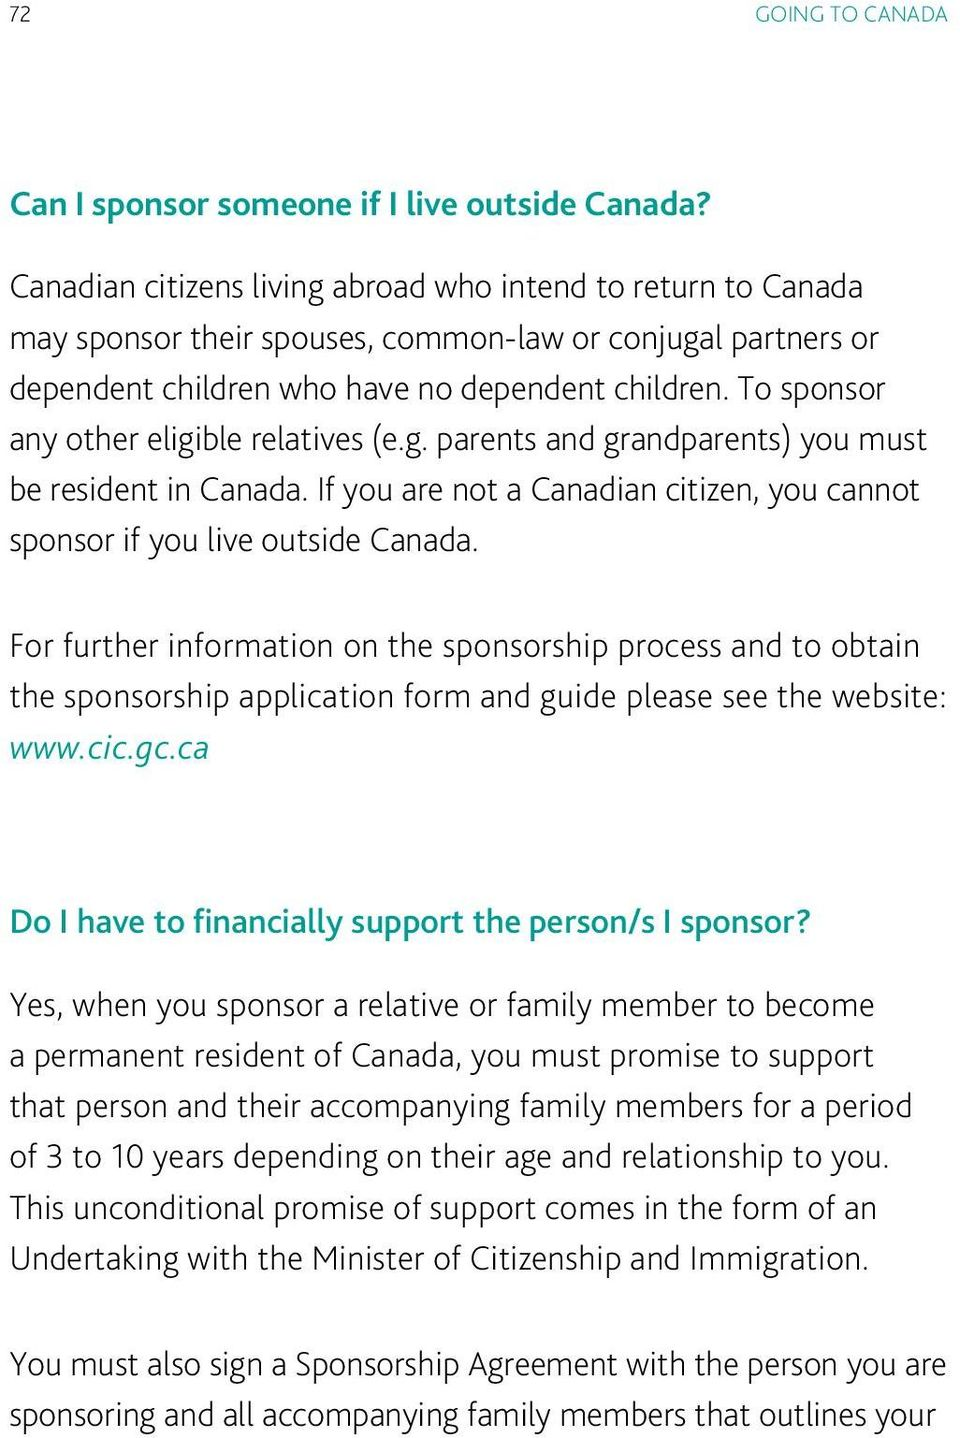 To sponsor any other eligible relatives (e.g. parents and grandparents) you must be resident in Canada. If you are not a Canadian citizen, you cannot sponsor if you live outside Canada.